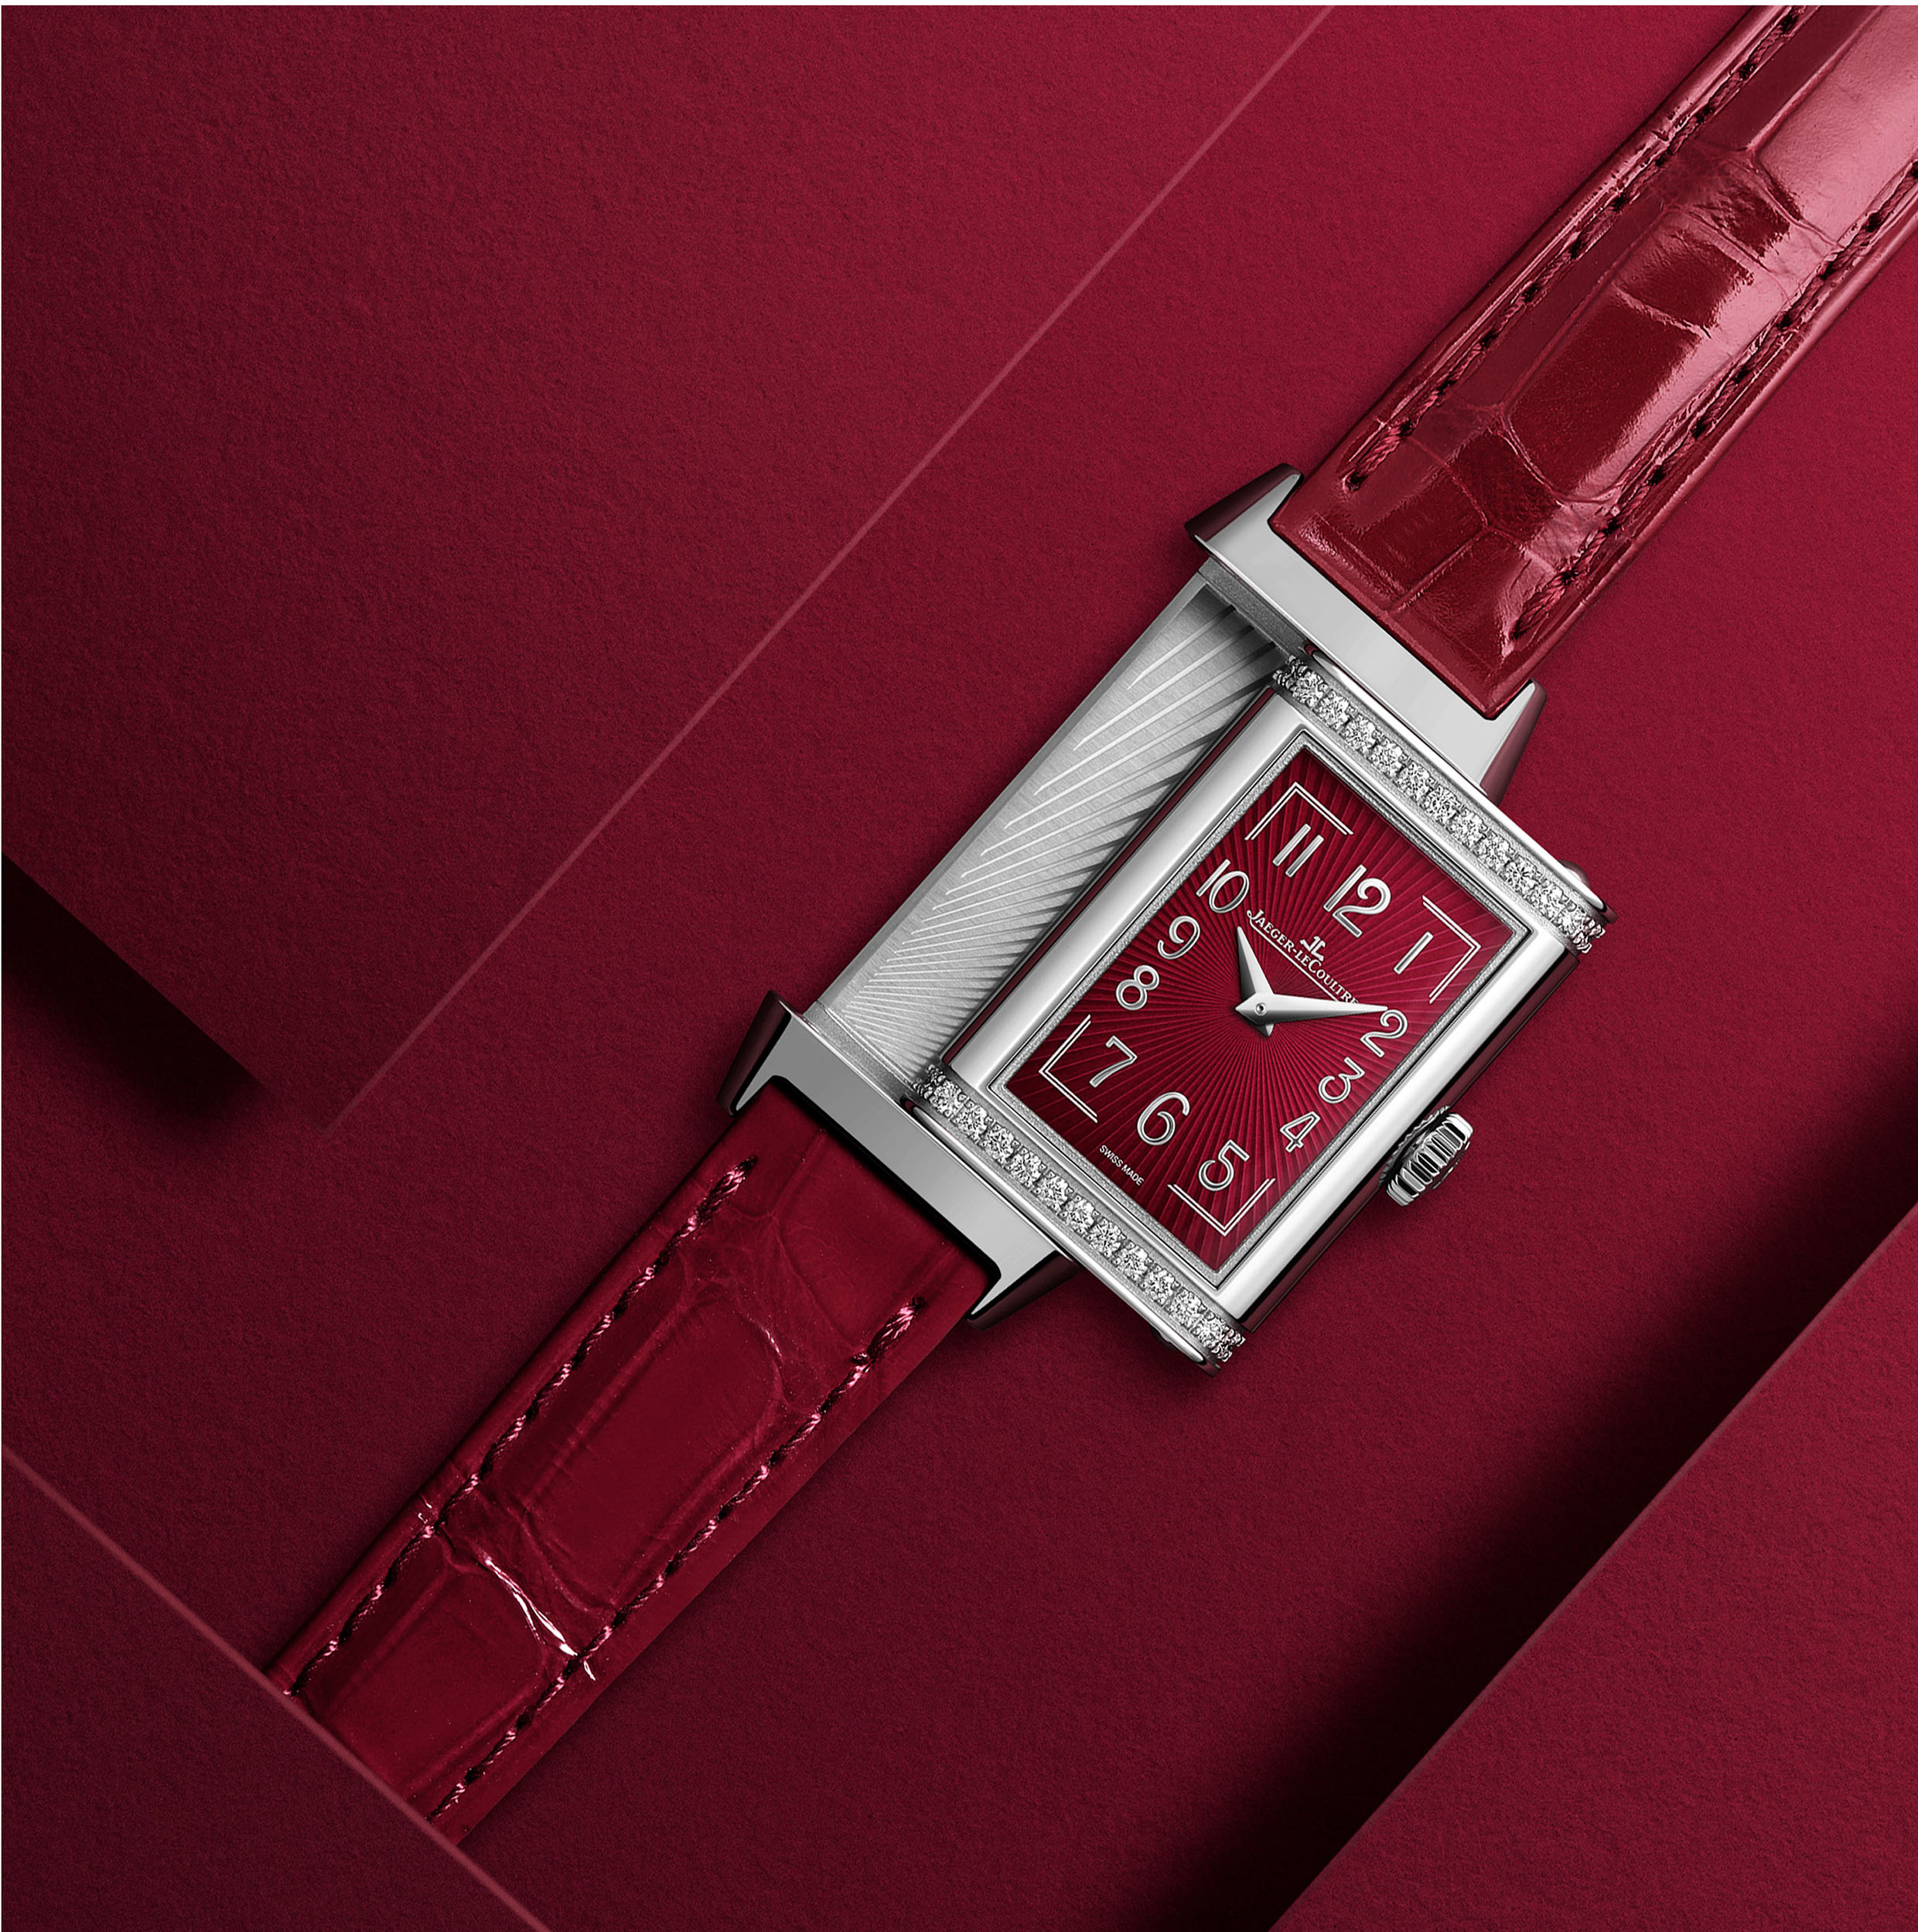 Reverso one red wine